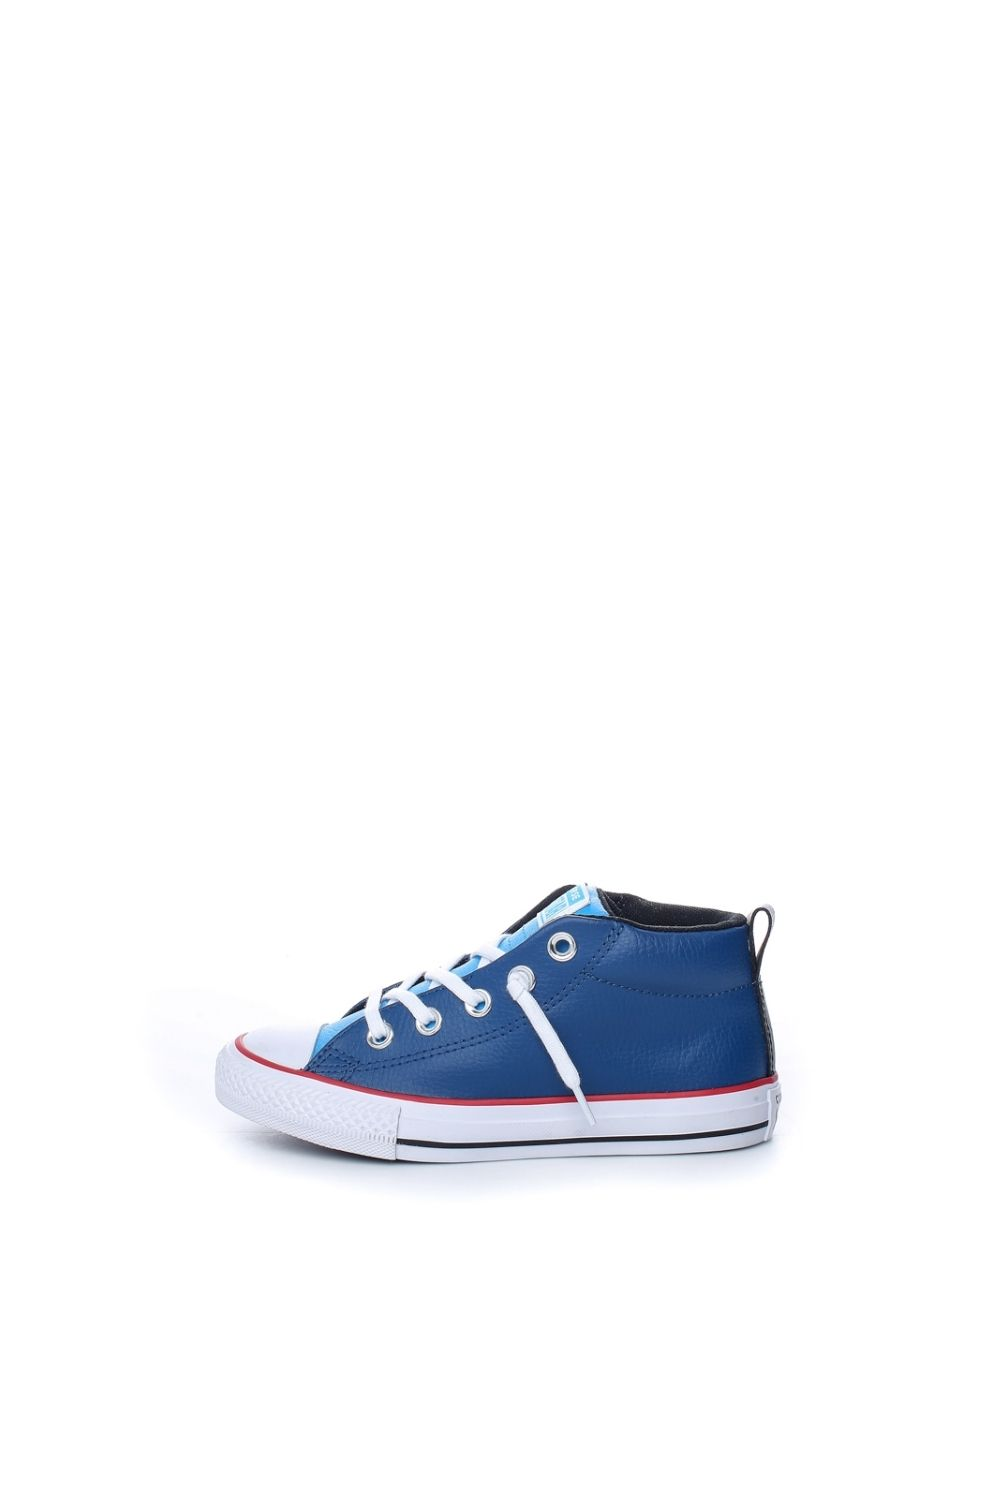 -20% Collective Online CONVERSE – Παιδικά δερμάτινα μποτάκια Chuck Taylor  All Star Street μπλε 3dbc67be34a